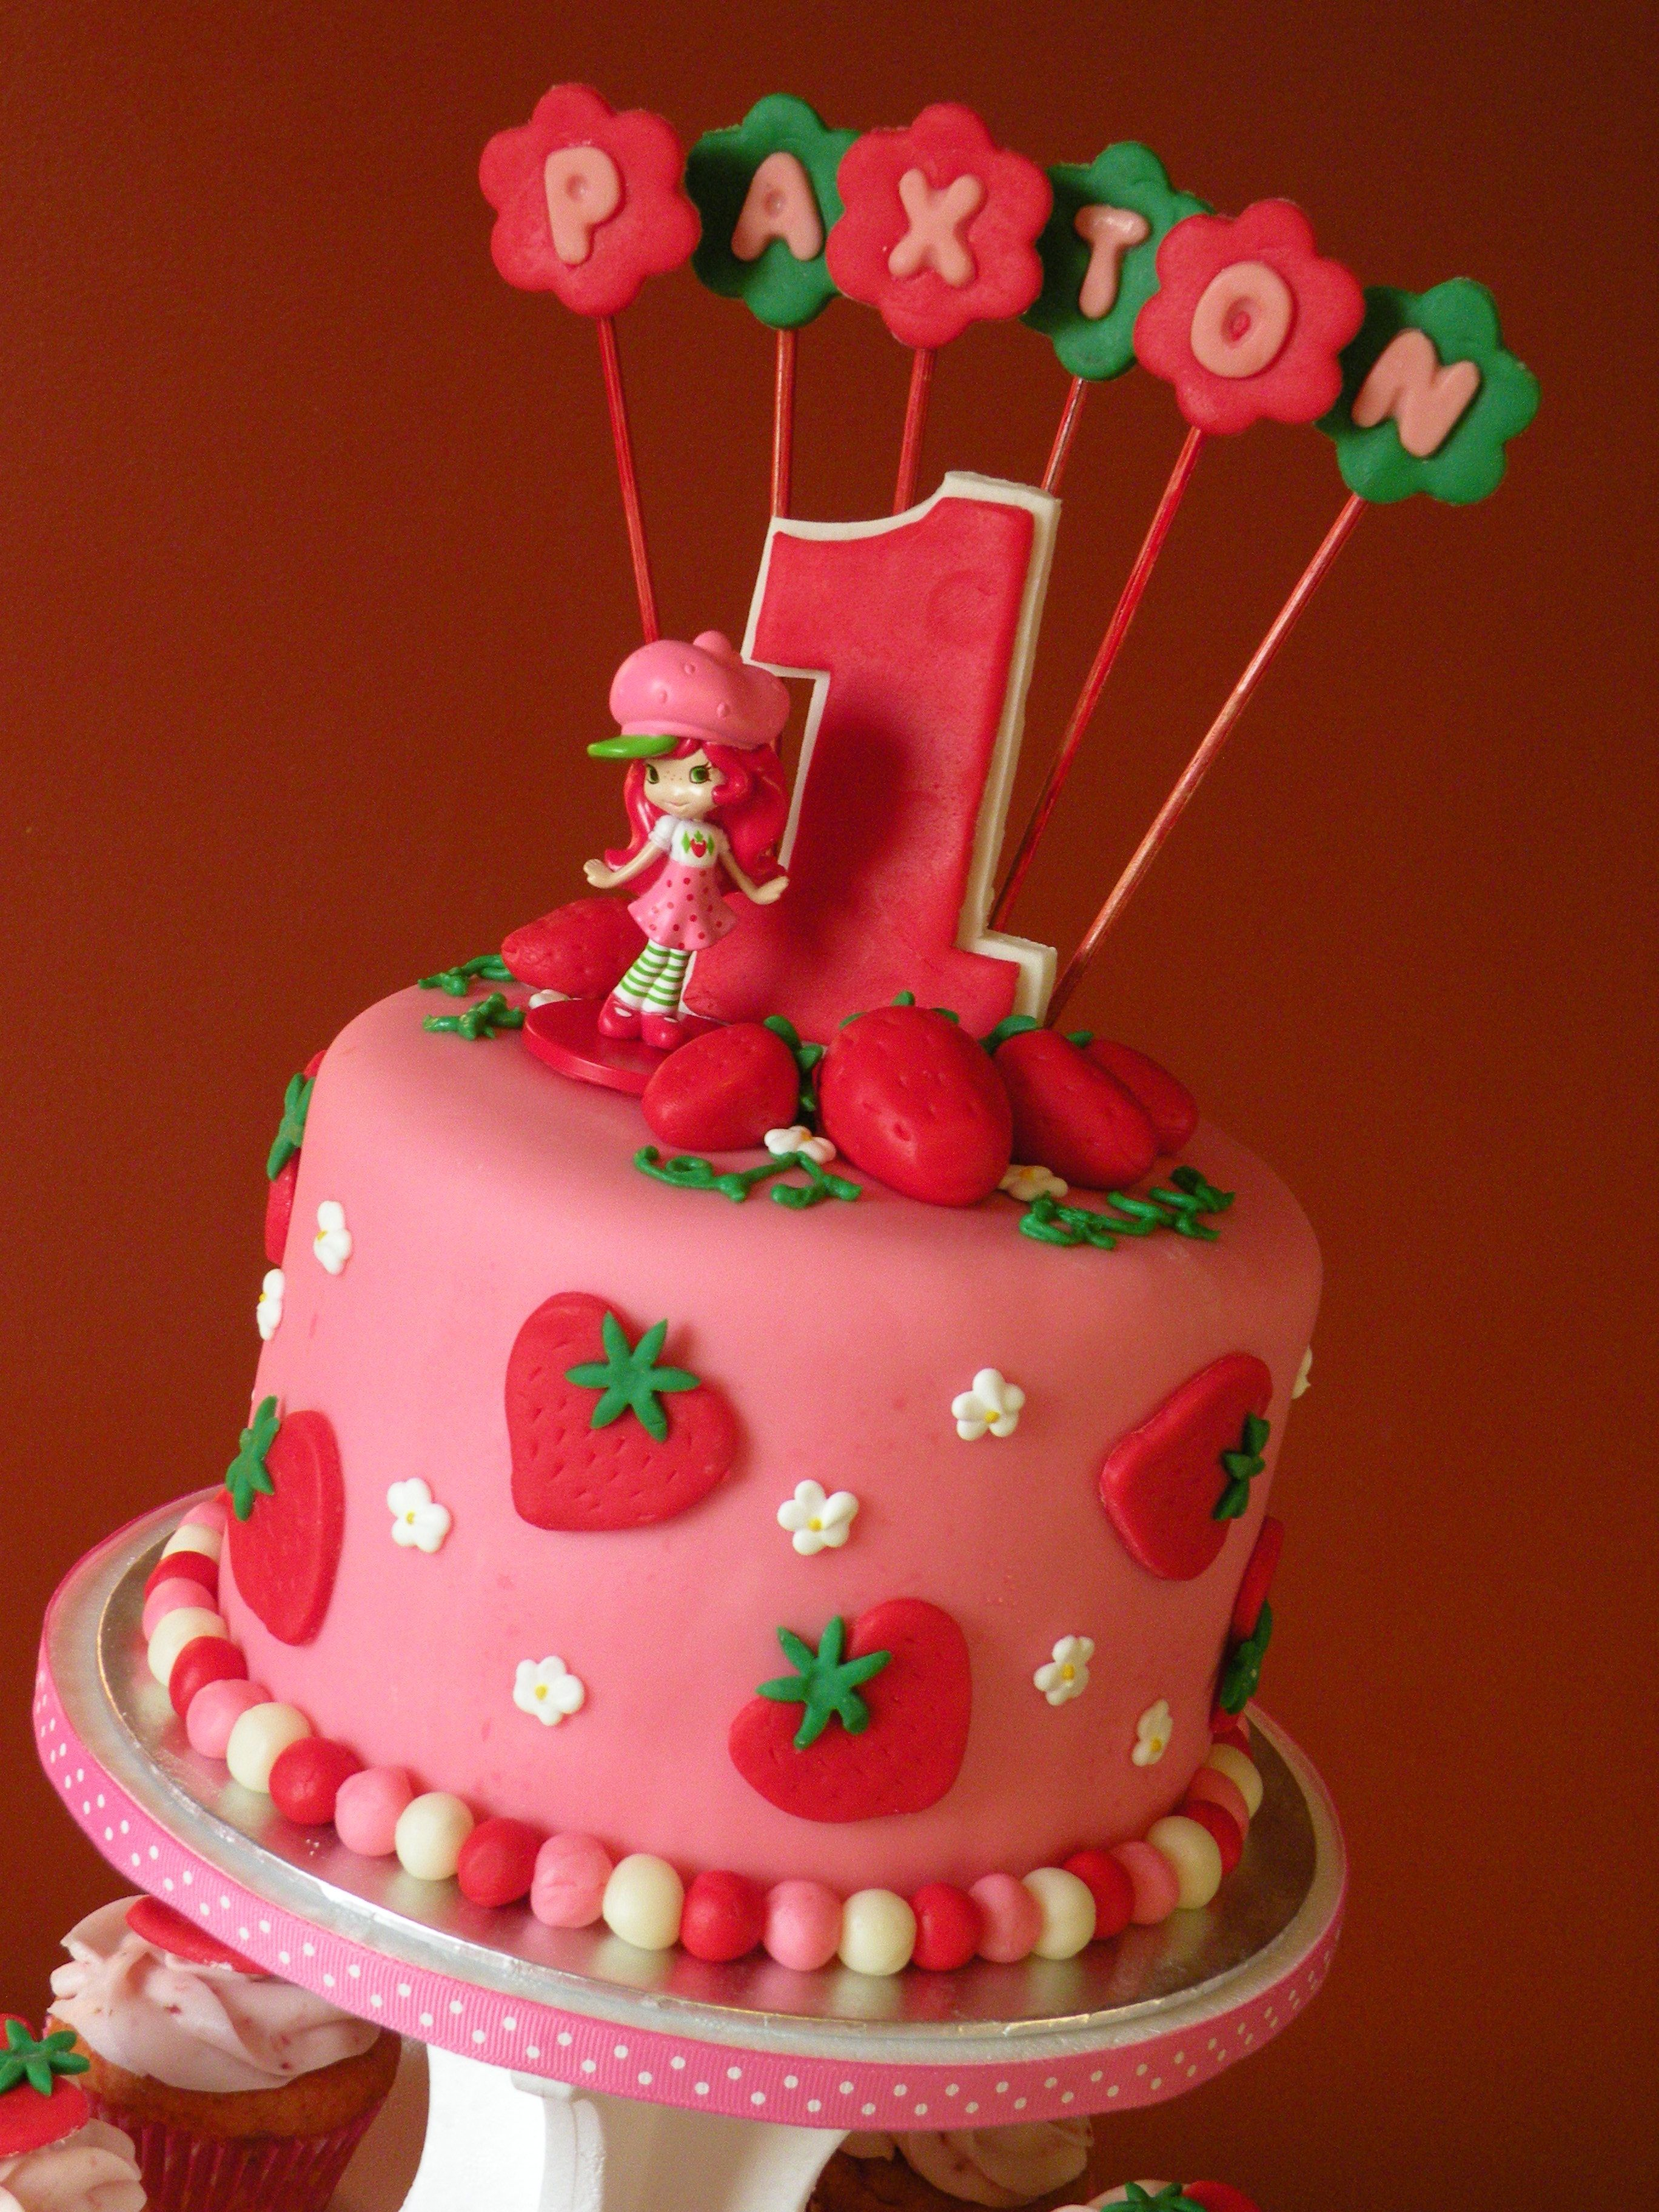 30 Excellent Image of Strawberry Shortcake Birthday Cake